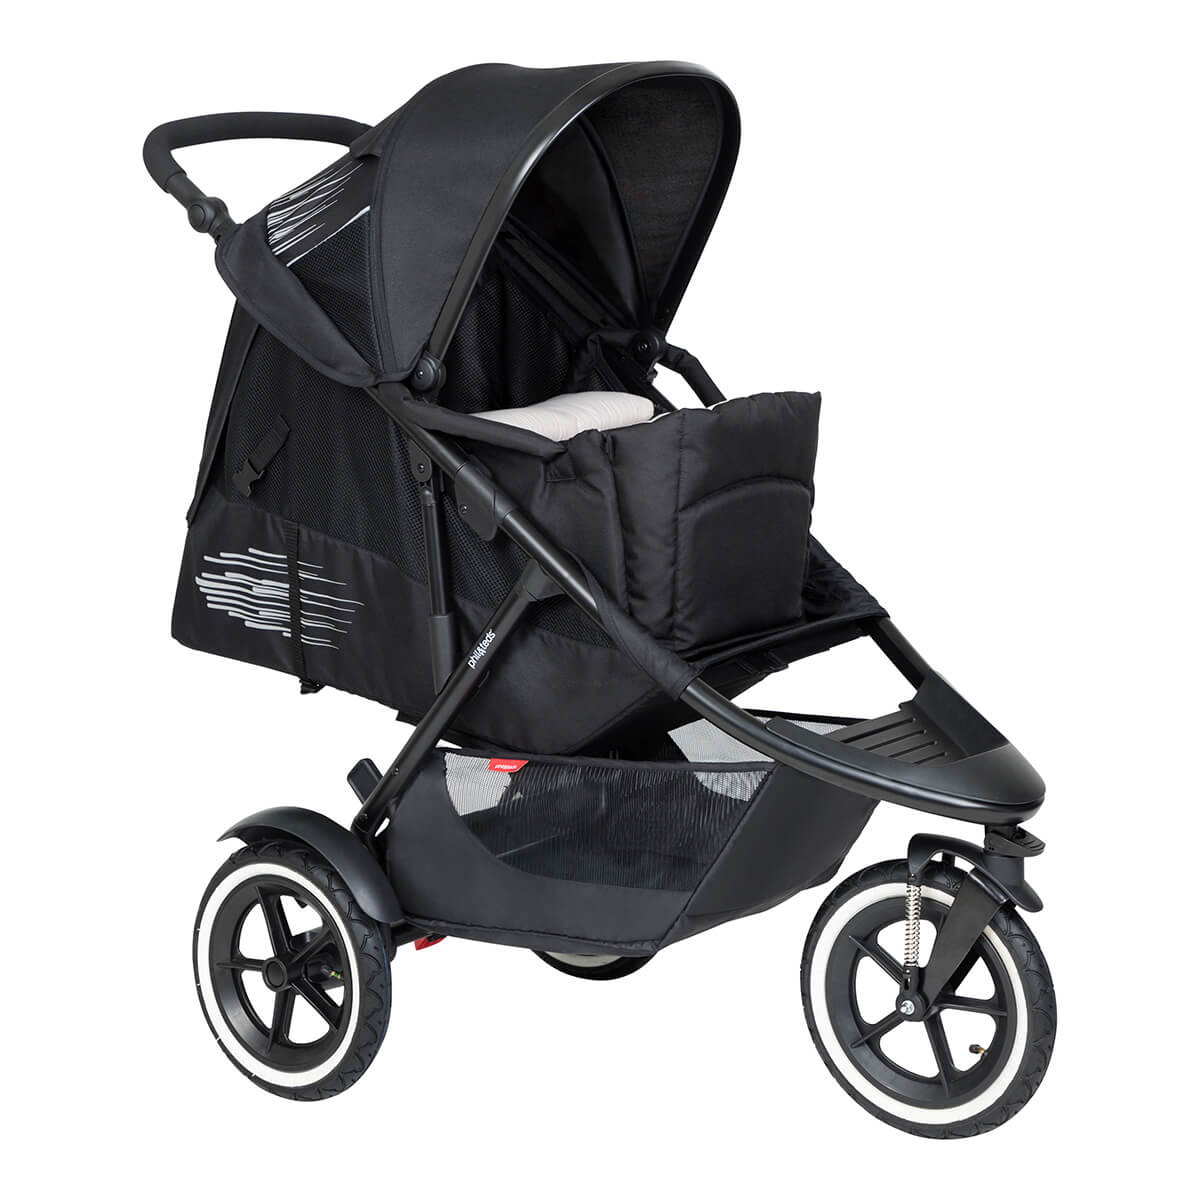 https://cdn.accentuate.io/4509906731085/19466203660482/philteds-sport-buggy-with-cocoon-full-recline-v1626485483448.jpg?1200x1200